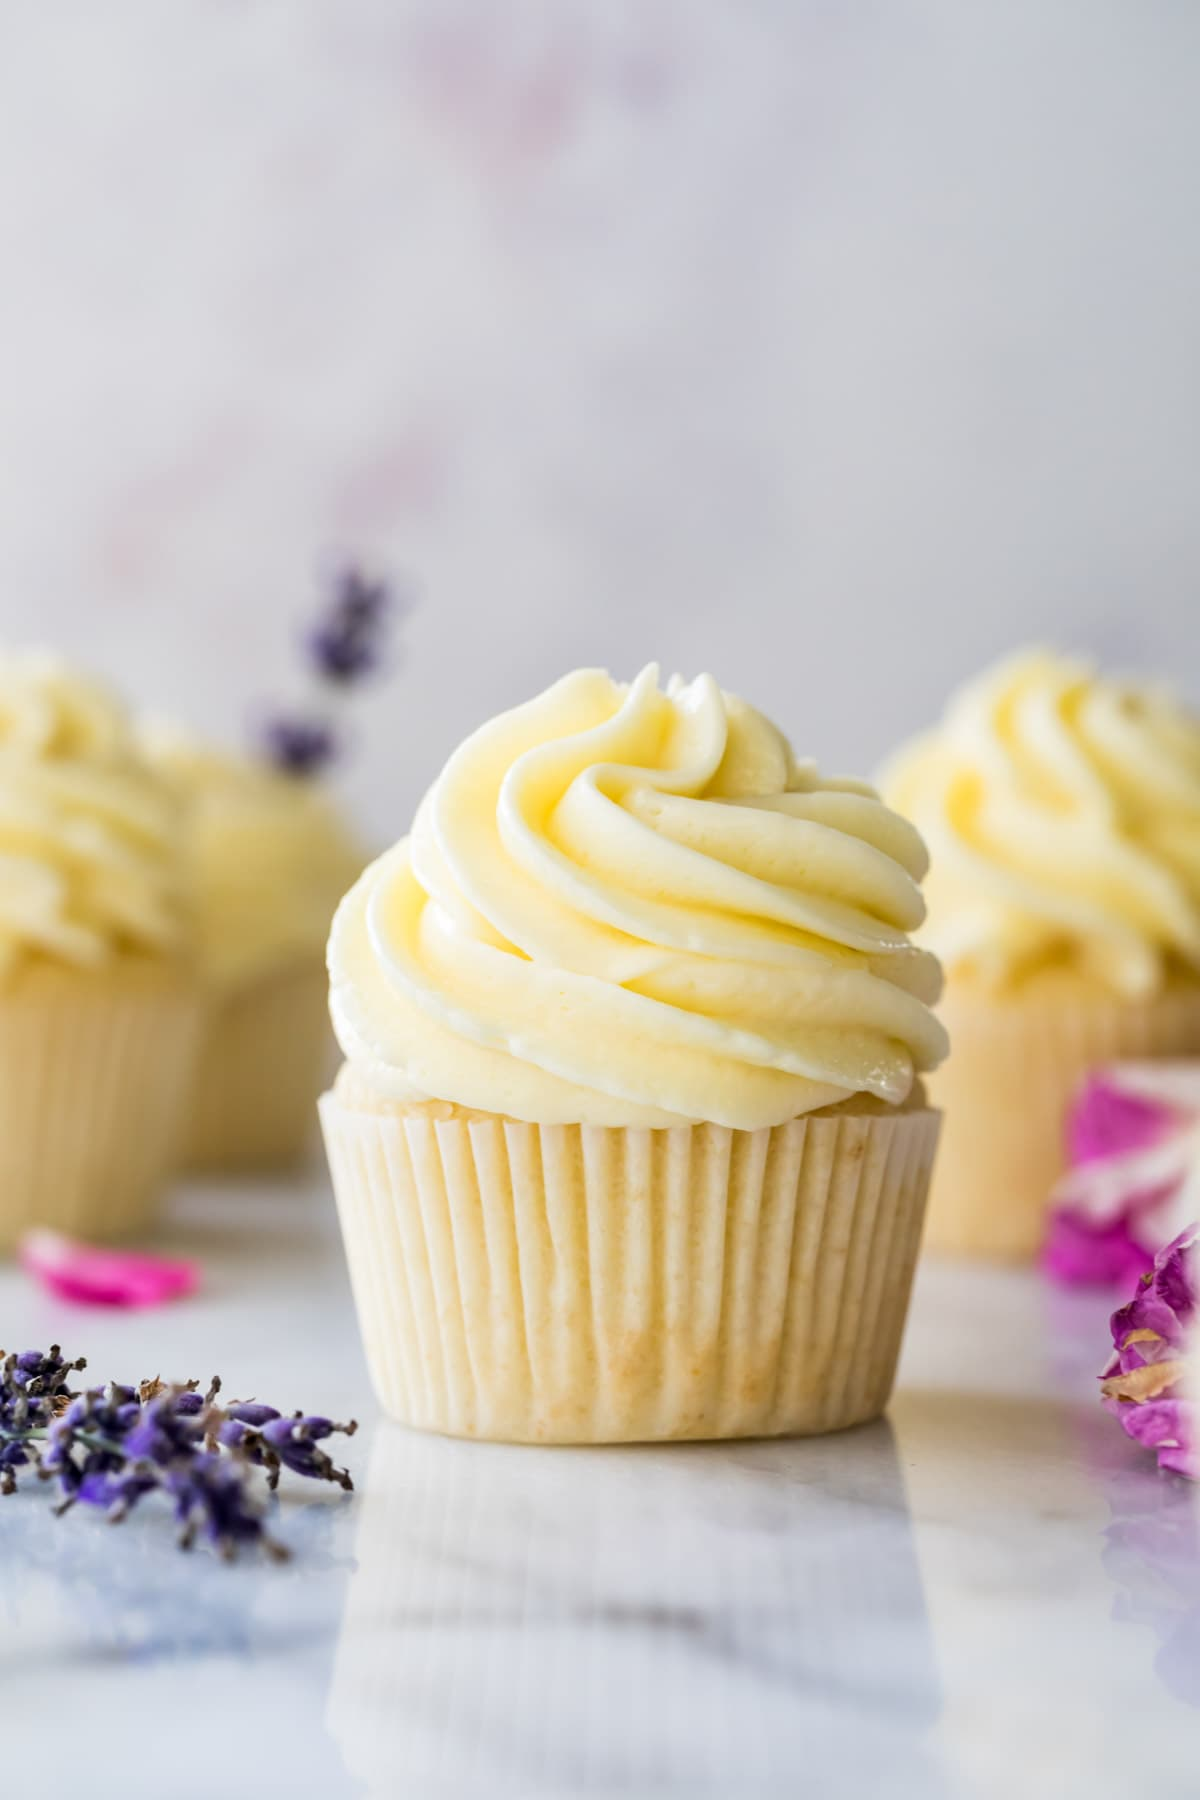 Cupcake topped with German buttercream frosting surrounded by other cupcakes